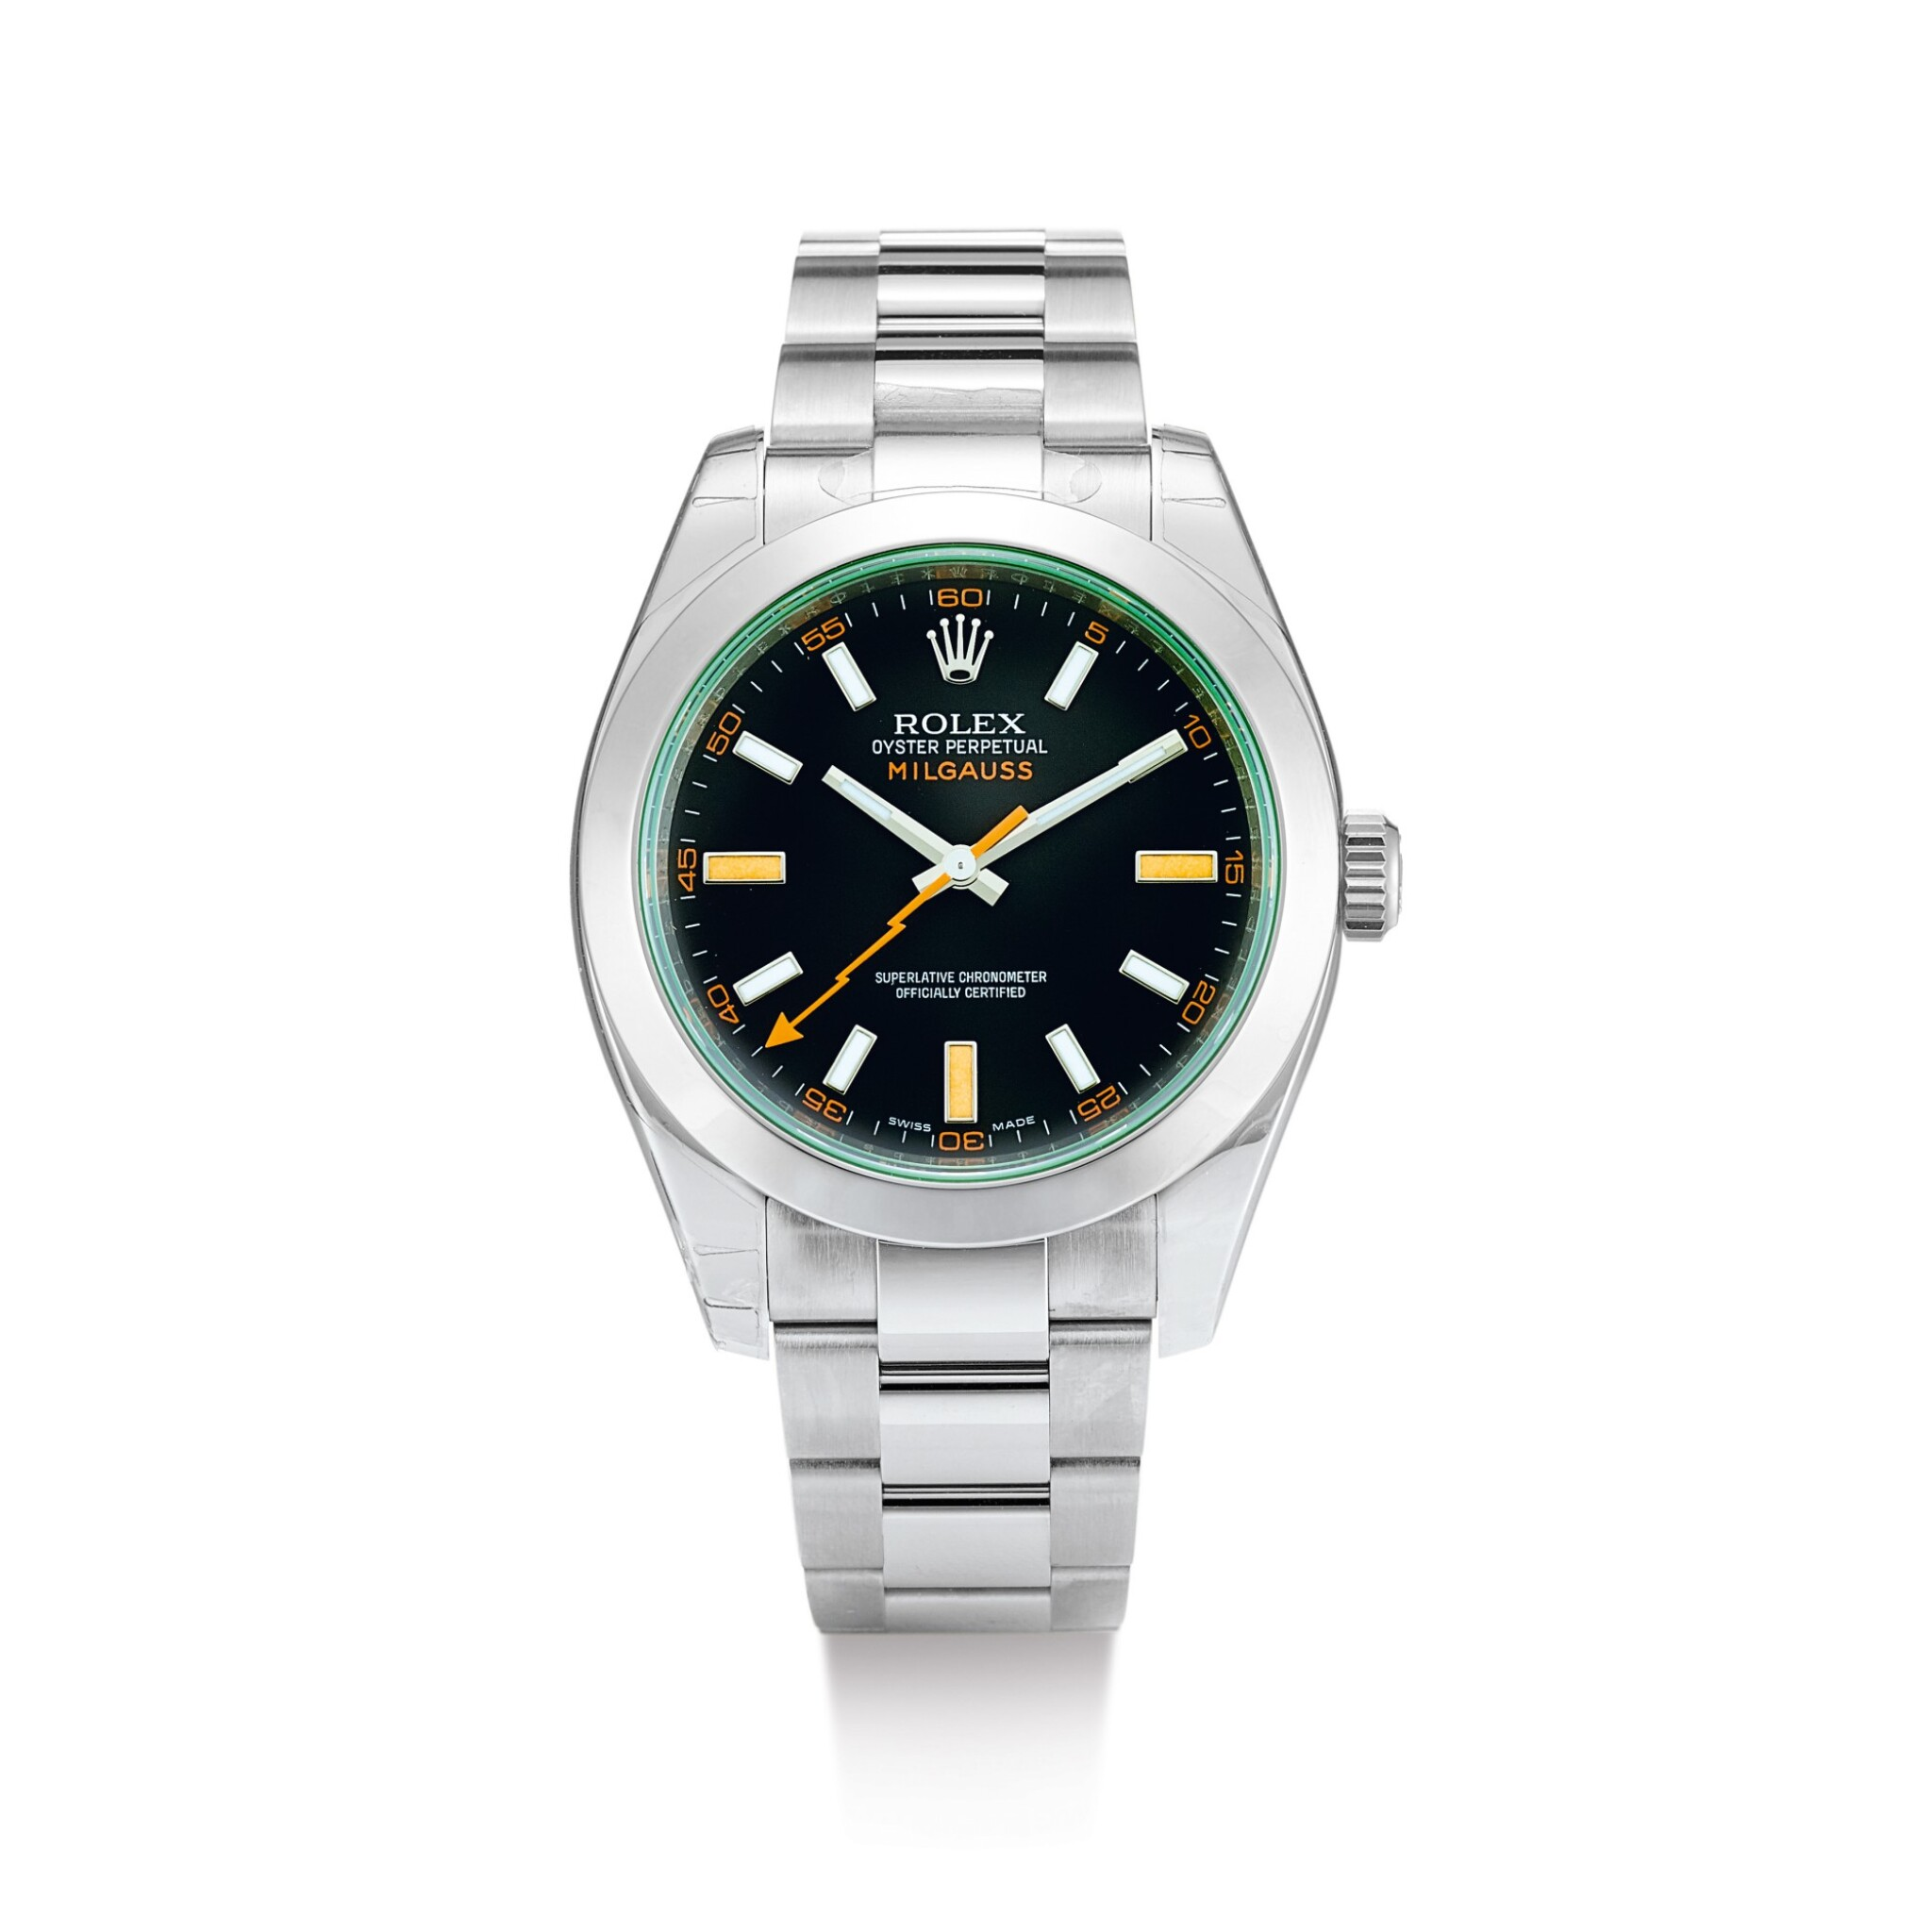 ROLEX | MILGAUSS, REFERENCE 116400GV A BRAND NEW STAINLESS STEEL WRISTWATCH WITH BRACELET, CIRCA 2008